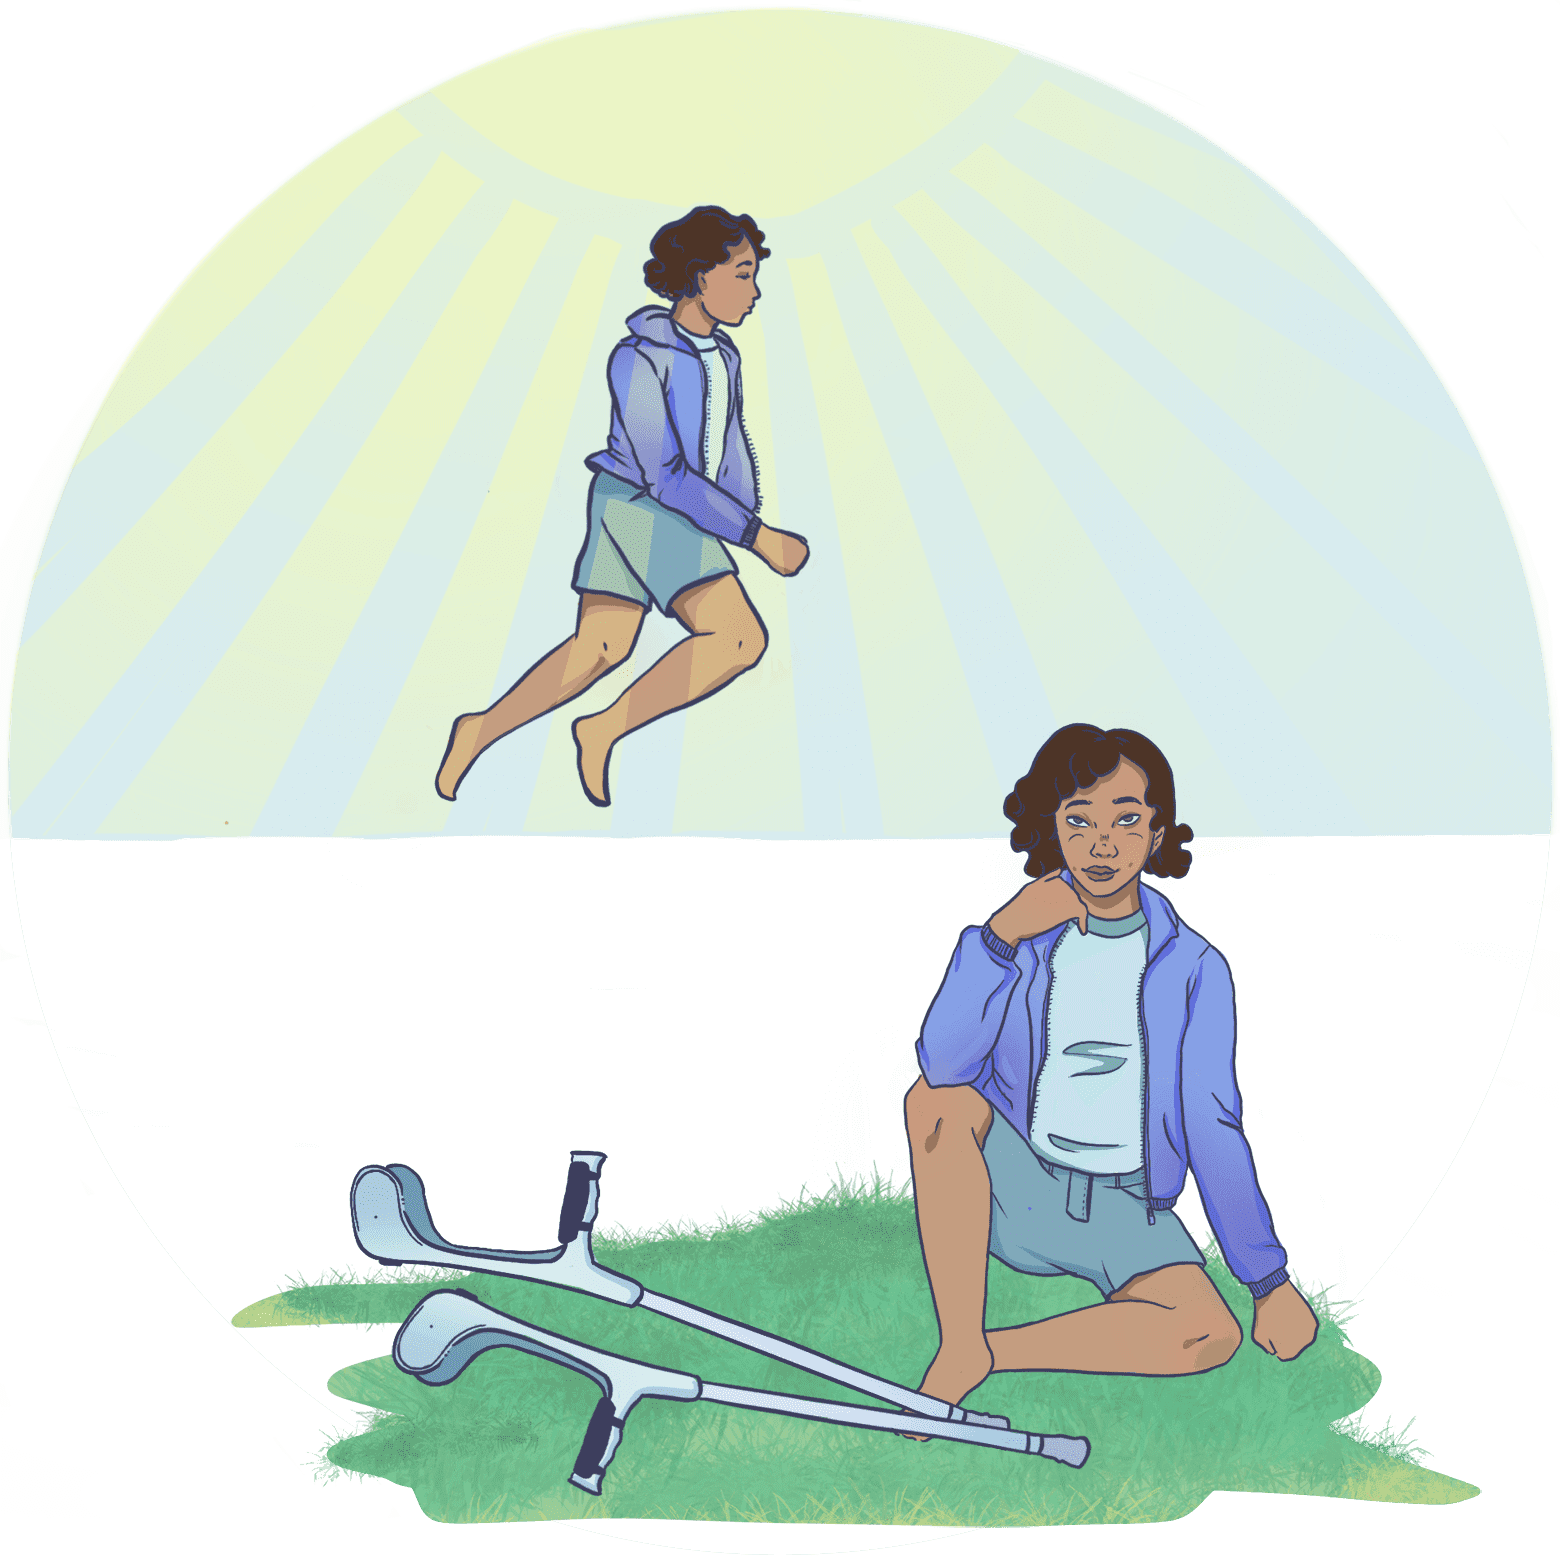 Illustration of a child sitting on the grass with crutches. A panel above their head shows them fantasizing about running